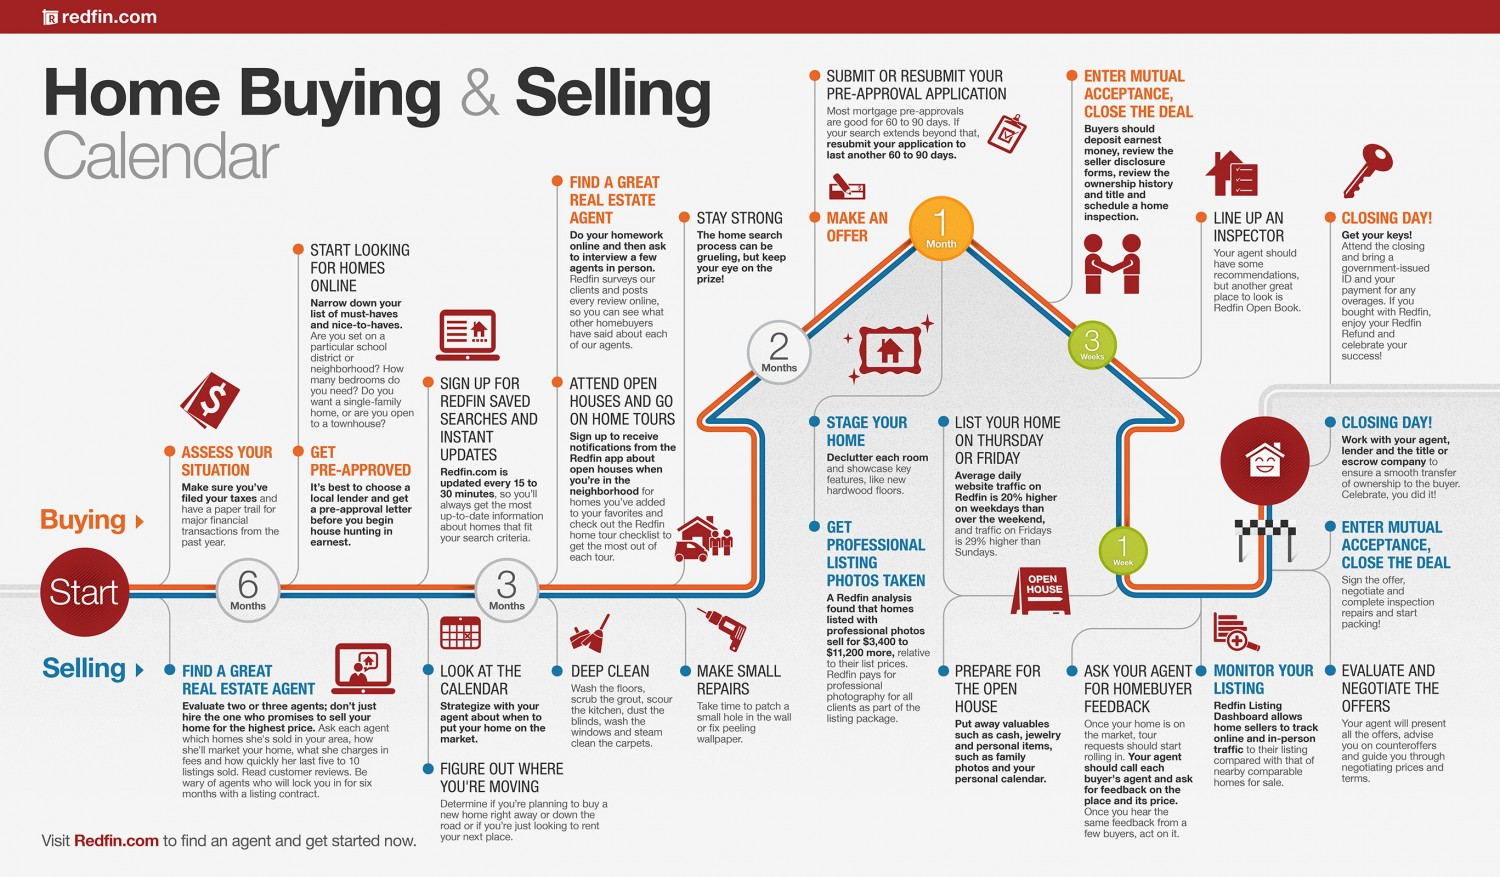 This Buying & Selling Roadmap is courtesy of Redfin.com